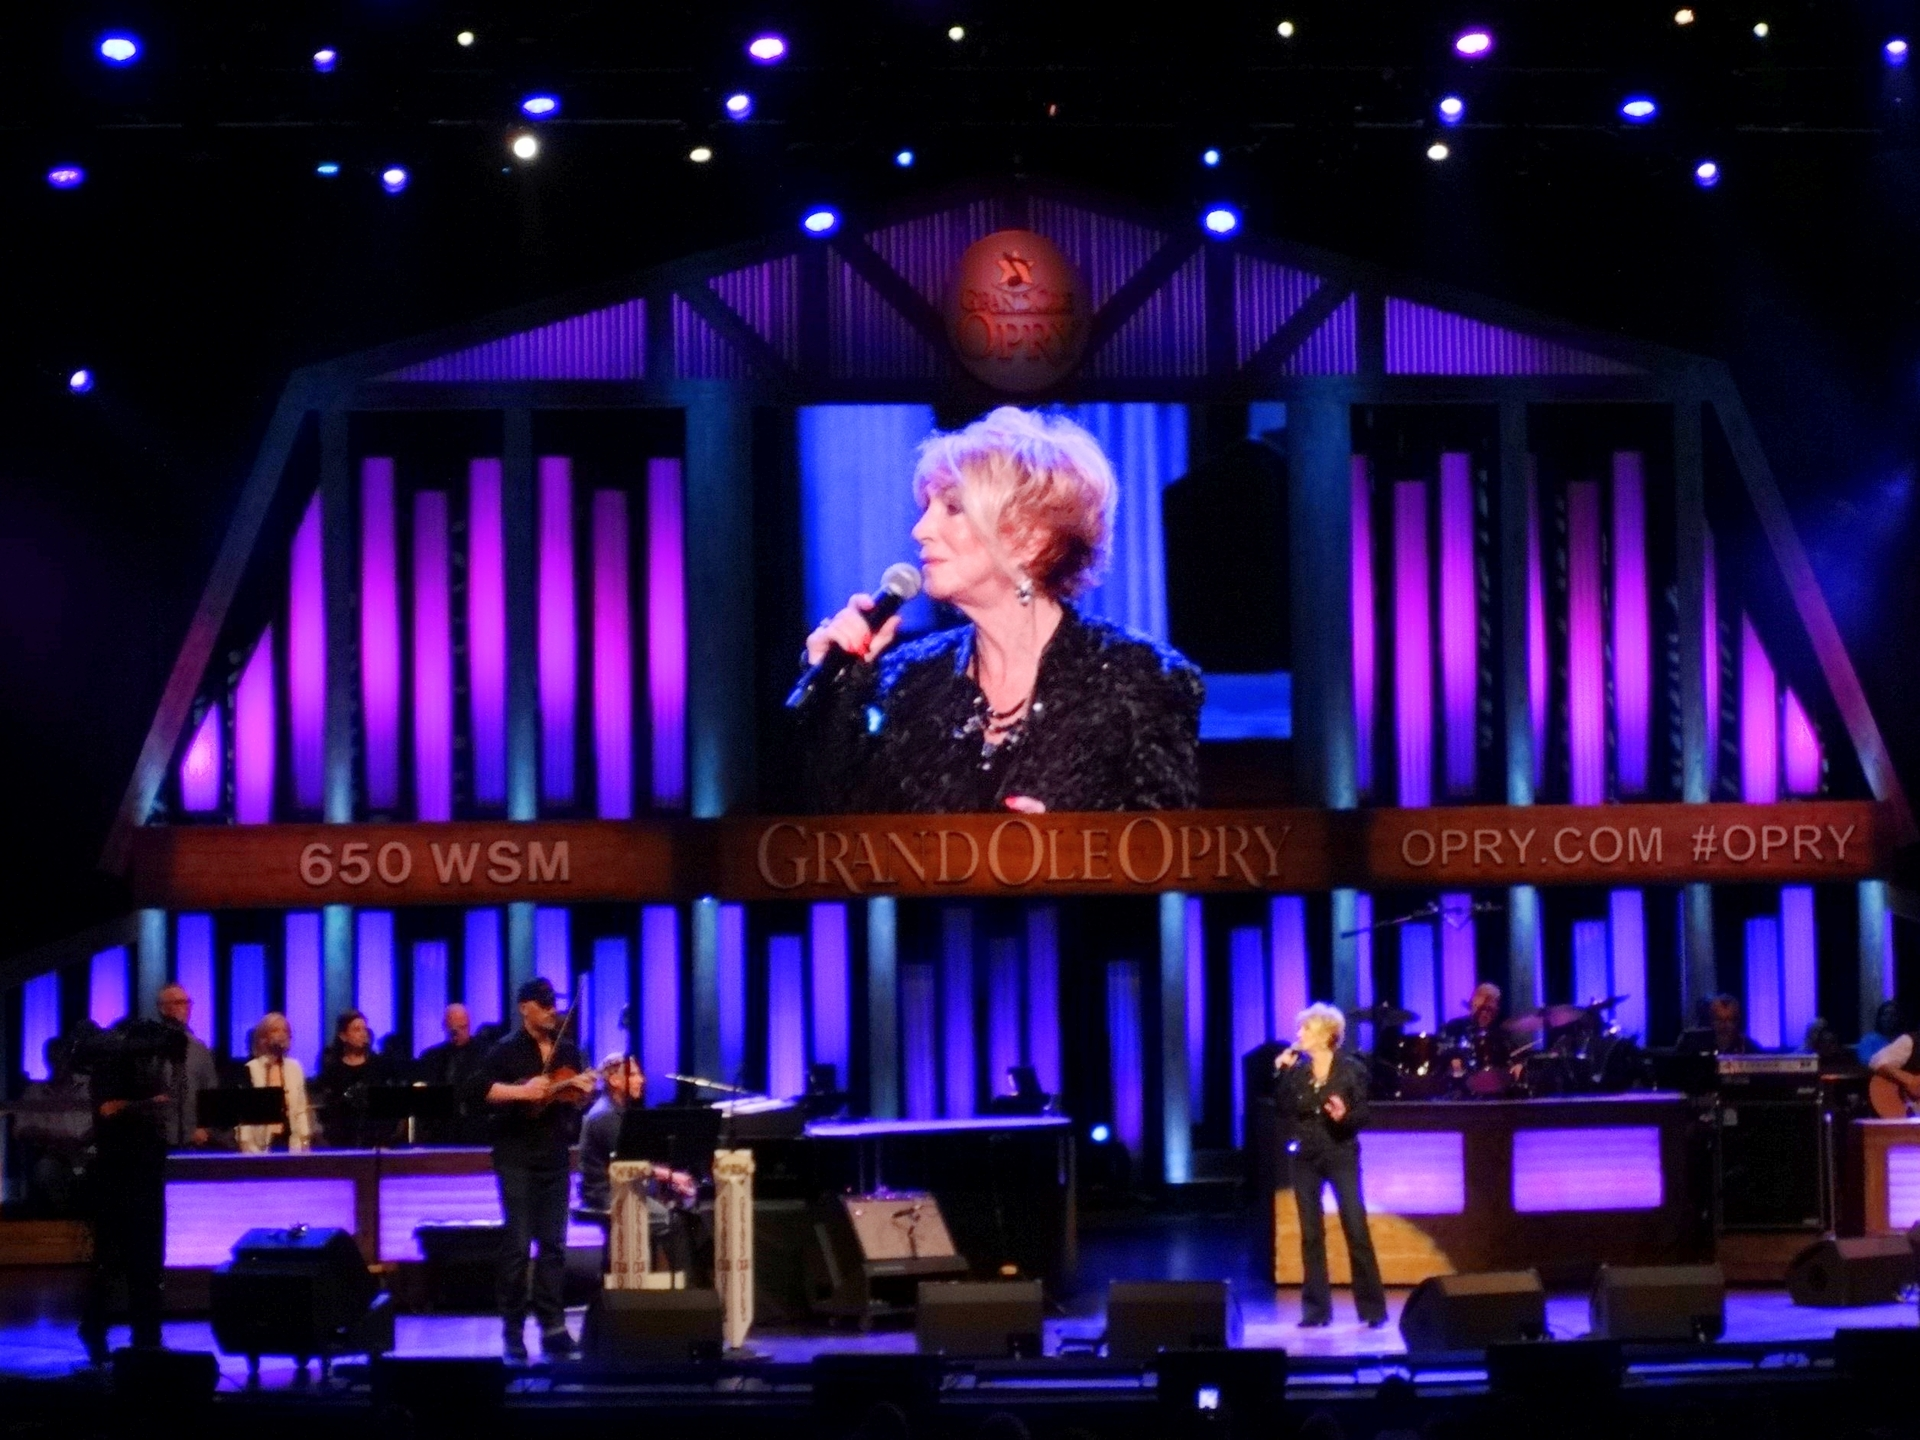 Strictly Country magazine Jeannie Seely on the Opry